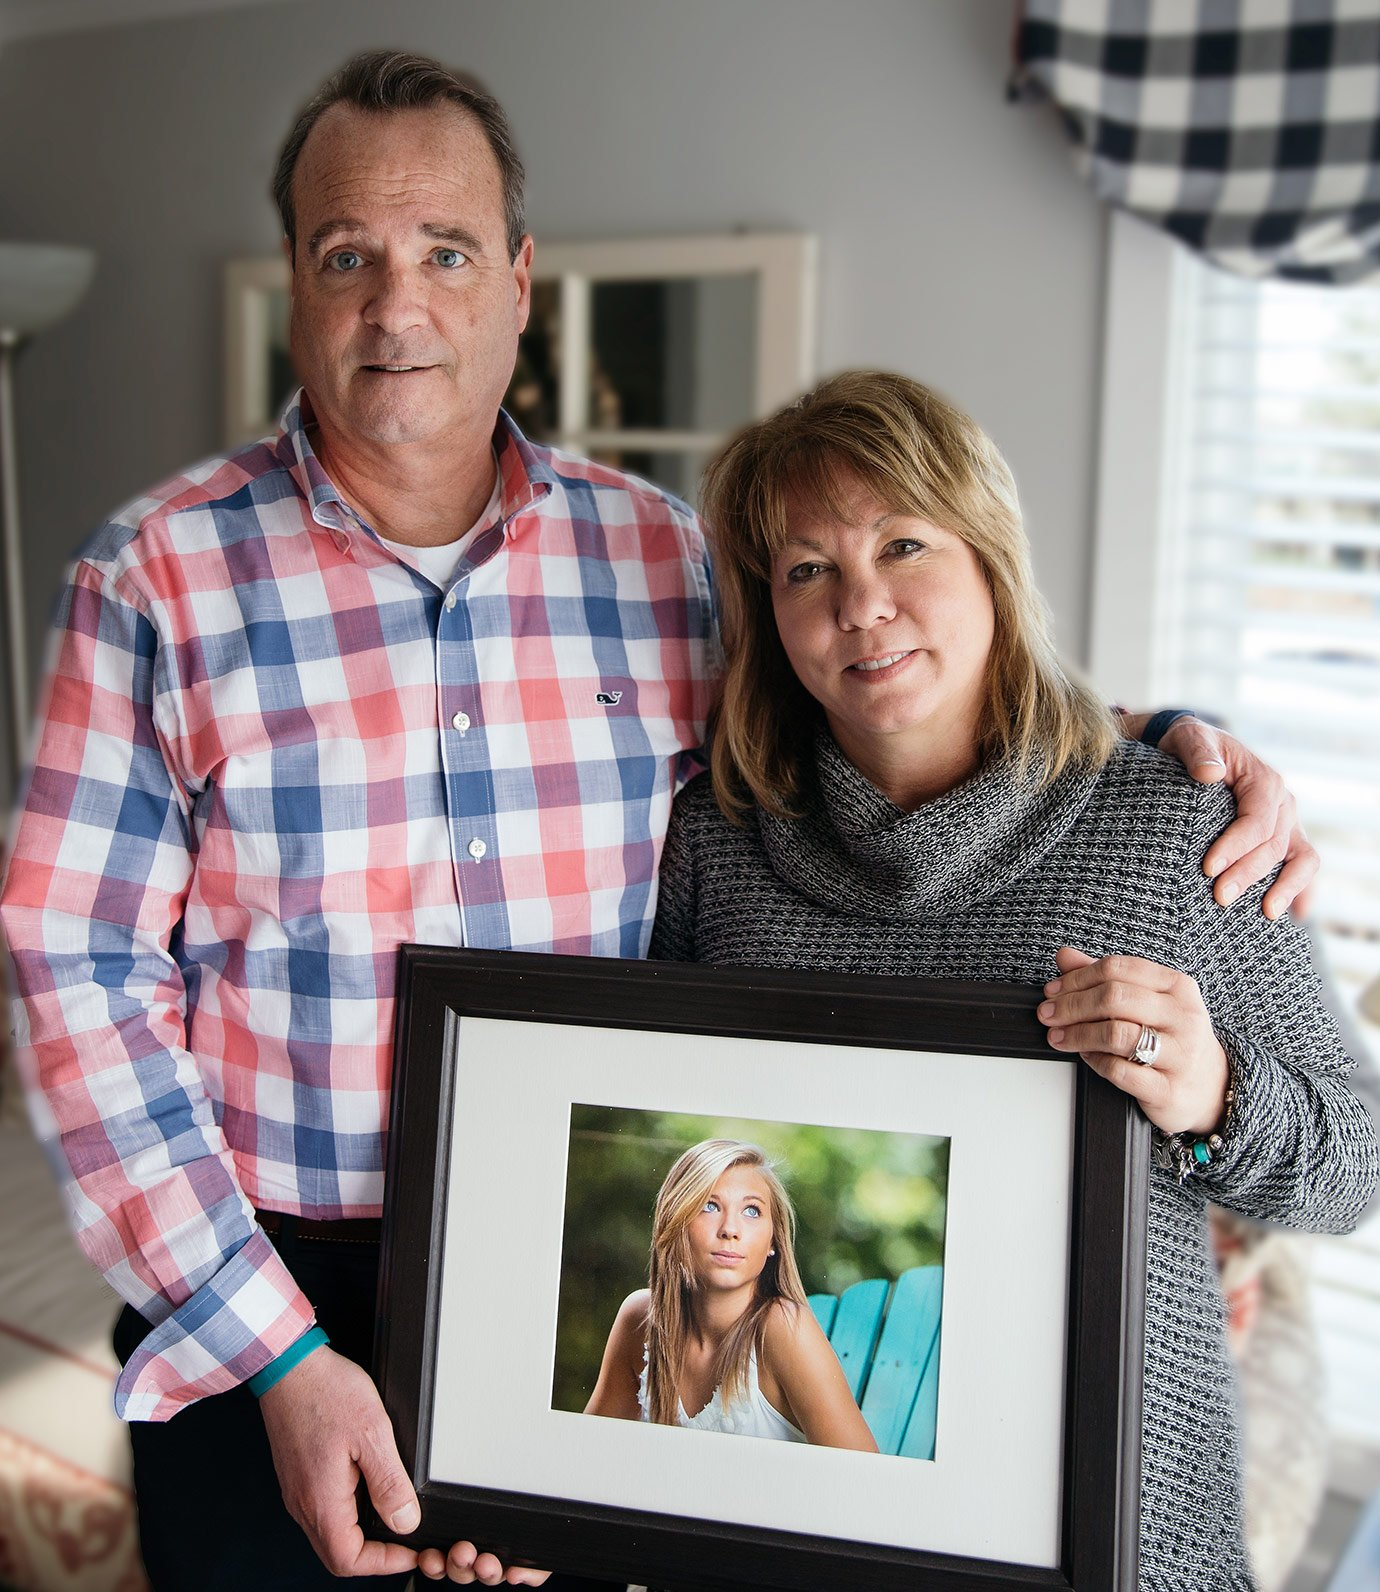 Wayne and Lori Brouilllet standing next to each, both holding onto a picture frame with a photo of their daughter in it. They're inside of a house standing in front of a window.